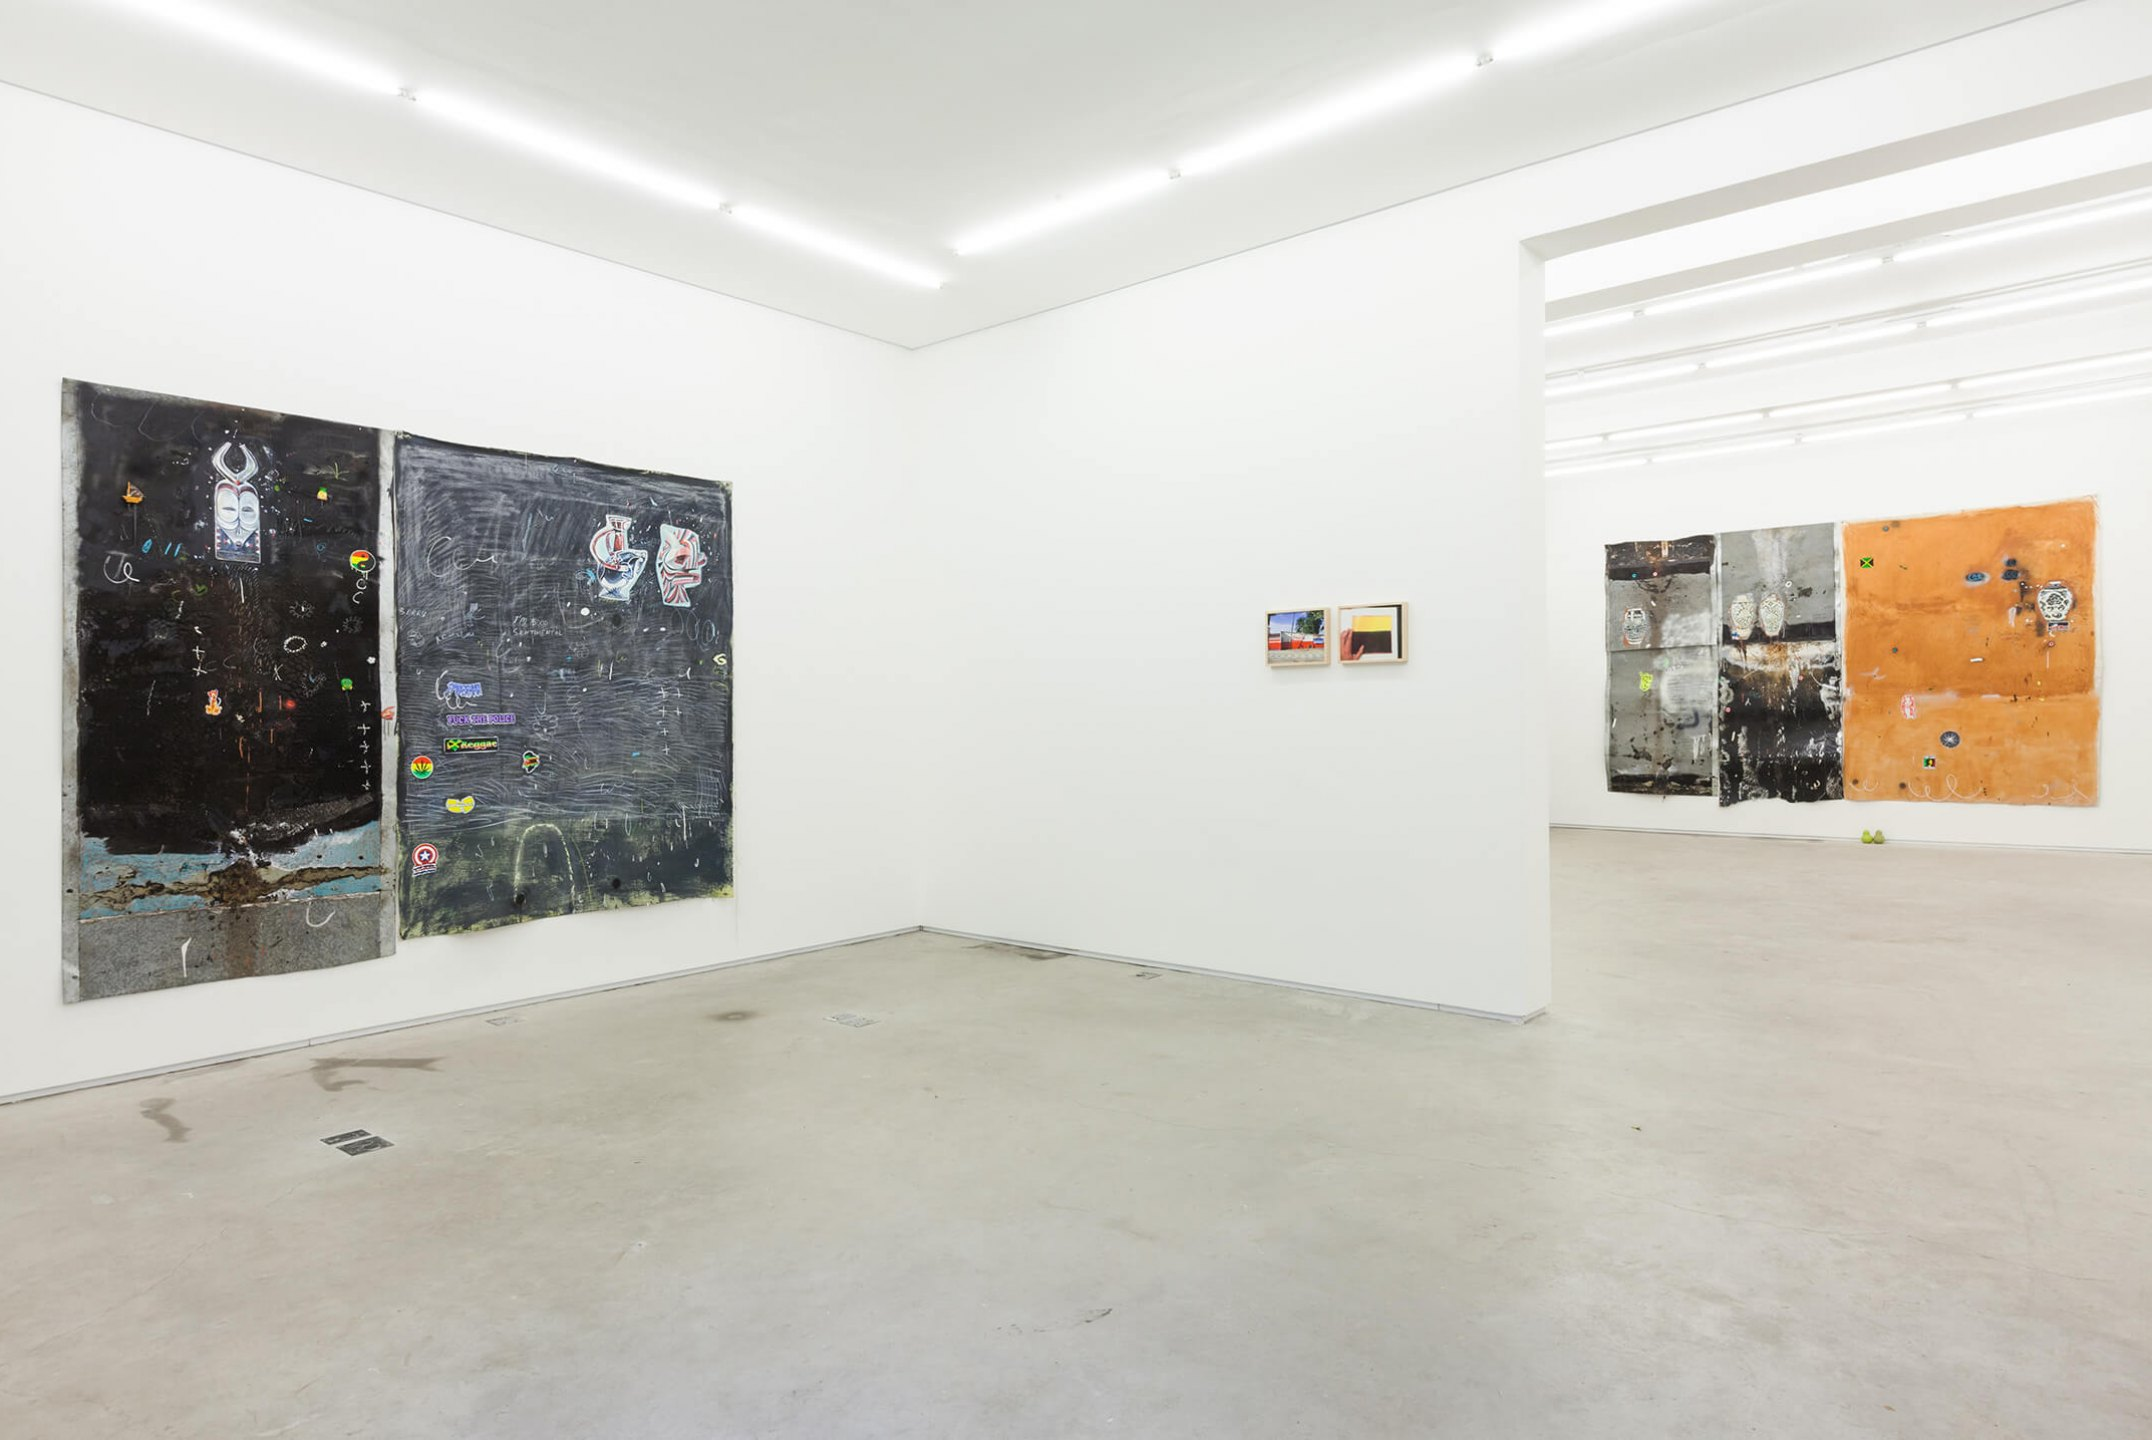 Paulo Nimer Pjota,<em>Synthesis between contradictory ideas and the plurality of the object as image</em>, Mendes Wood DM, São Paulo, 2016 - Mendes Wood DM